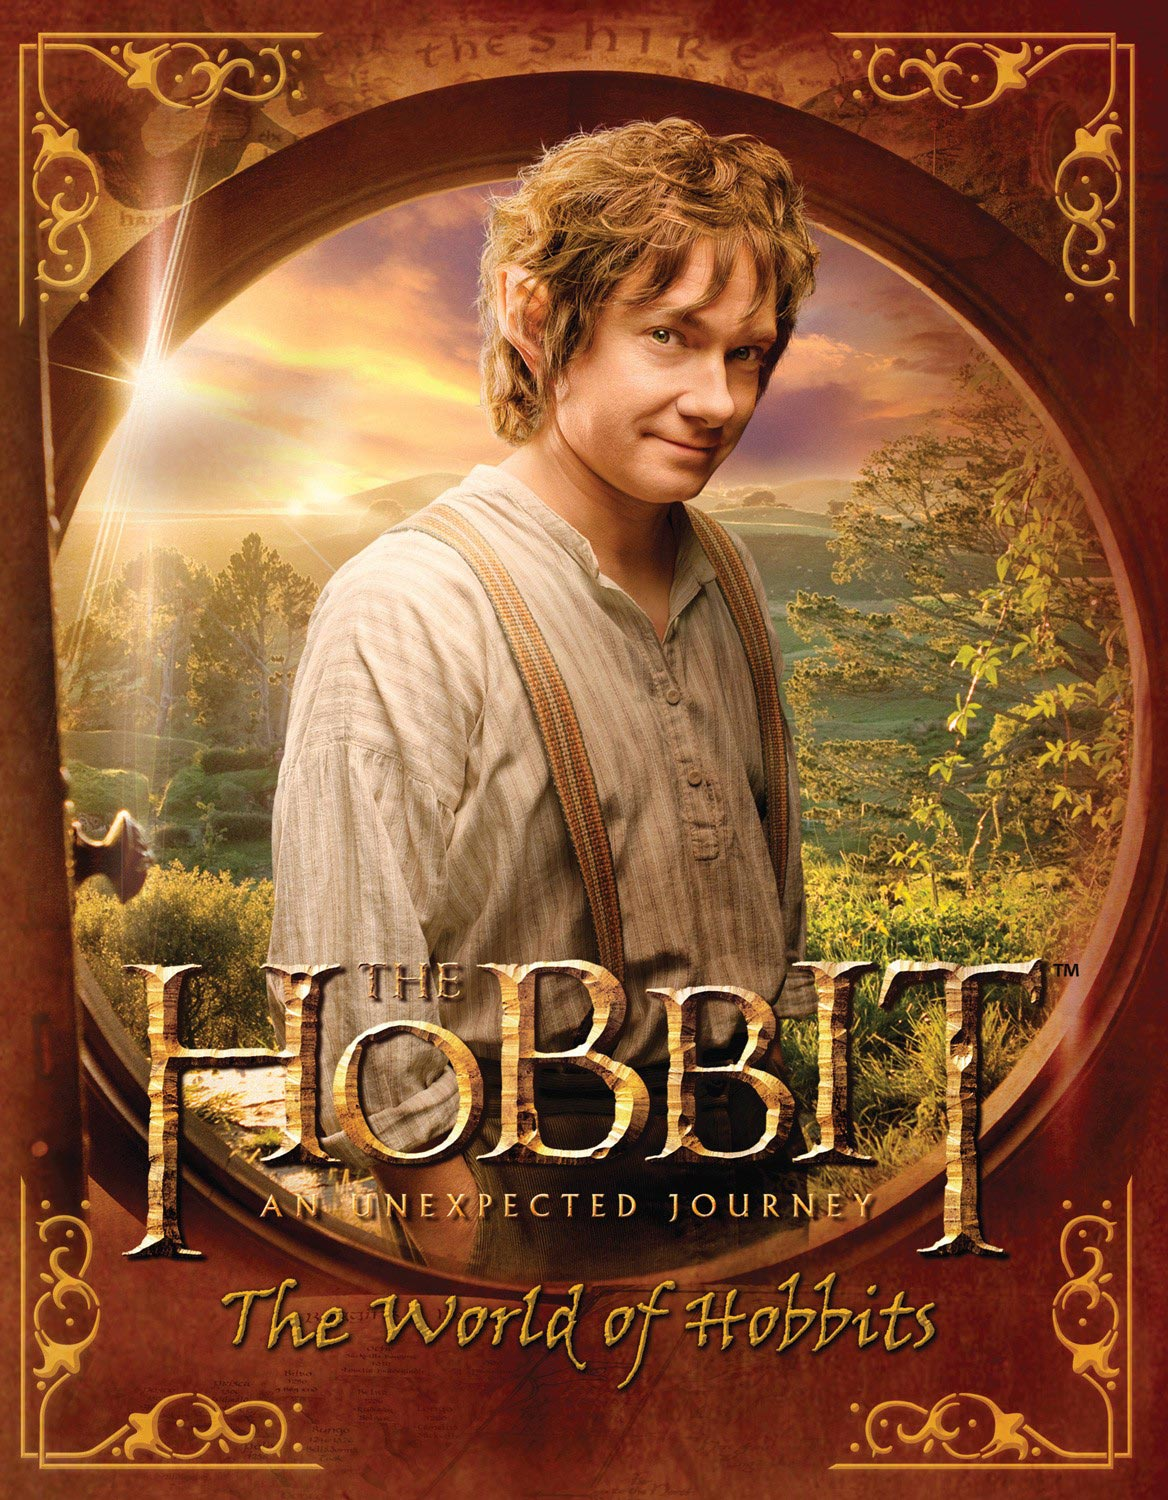 analyzing bilbo from jrr tolkiens the hobbit The hobbit, or, there and back again by jrr tolkien the hobbit, or, there and back again learning guide by phd students from stanford, harvard, berkeley.